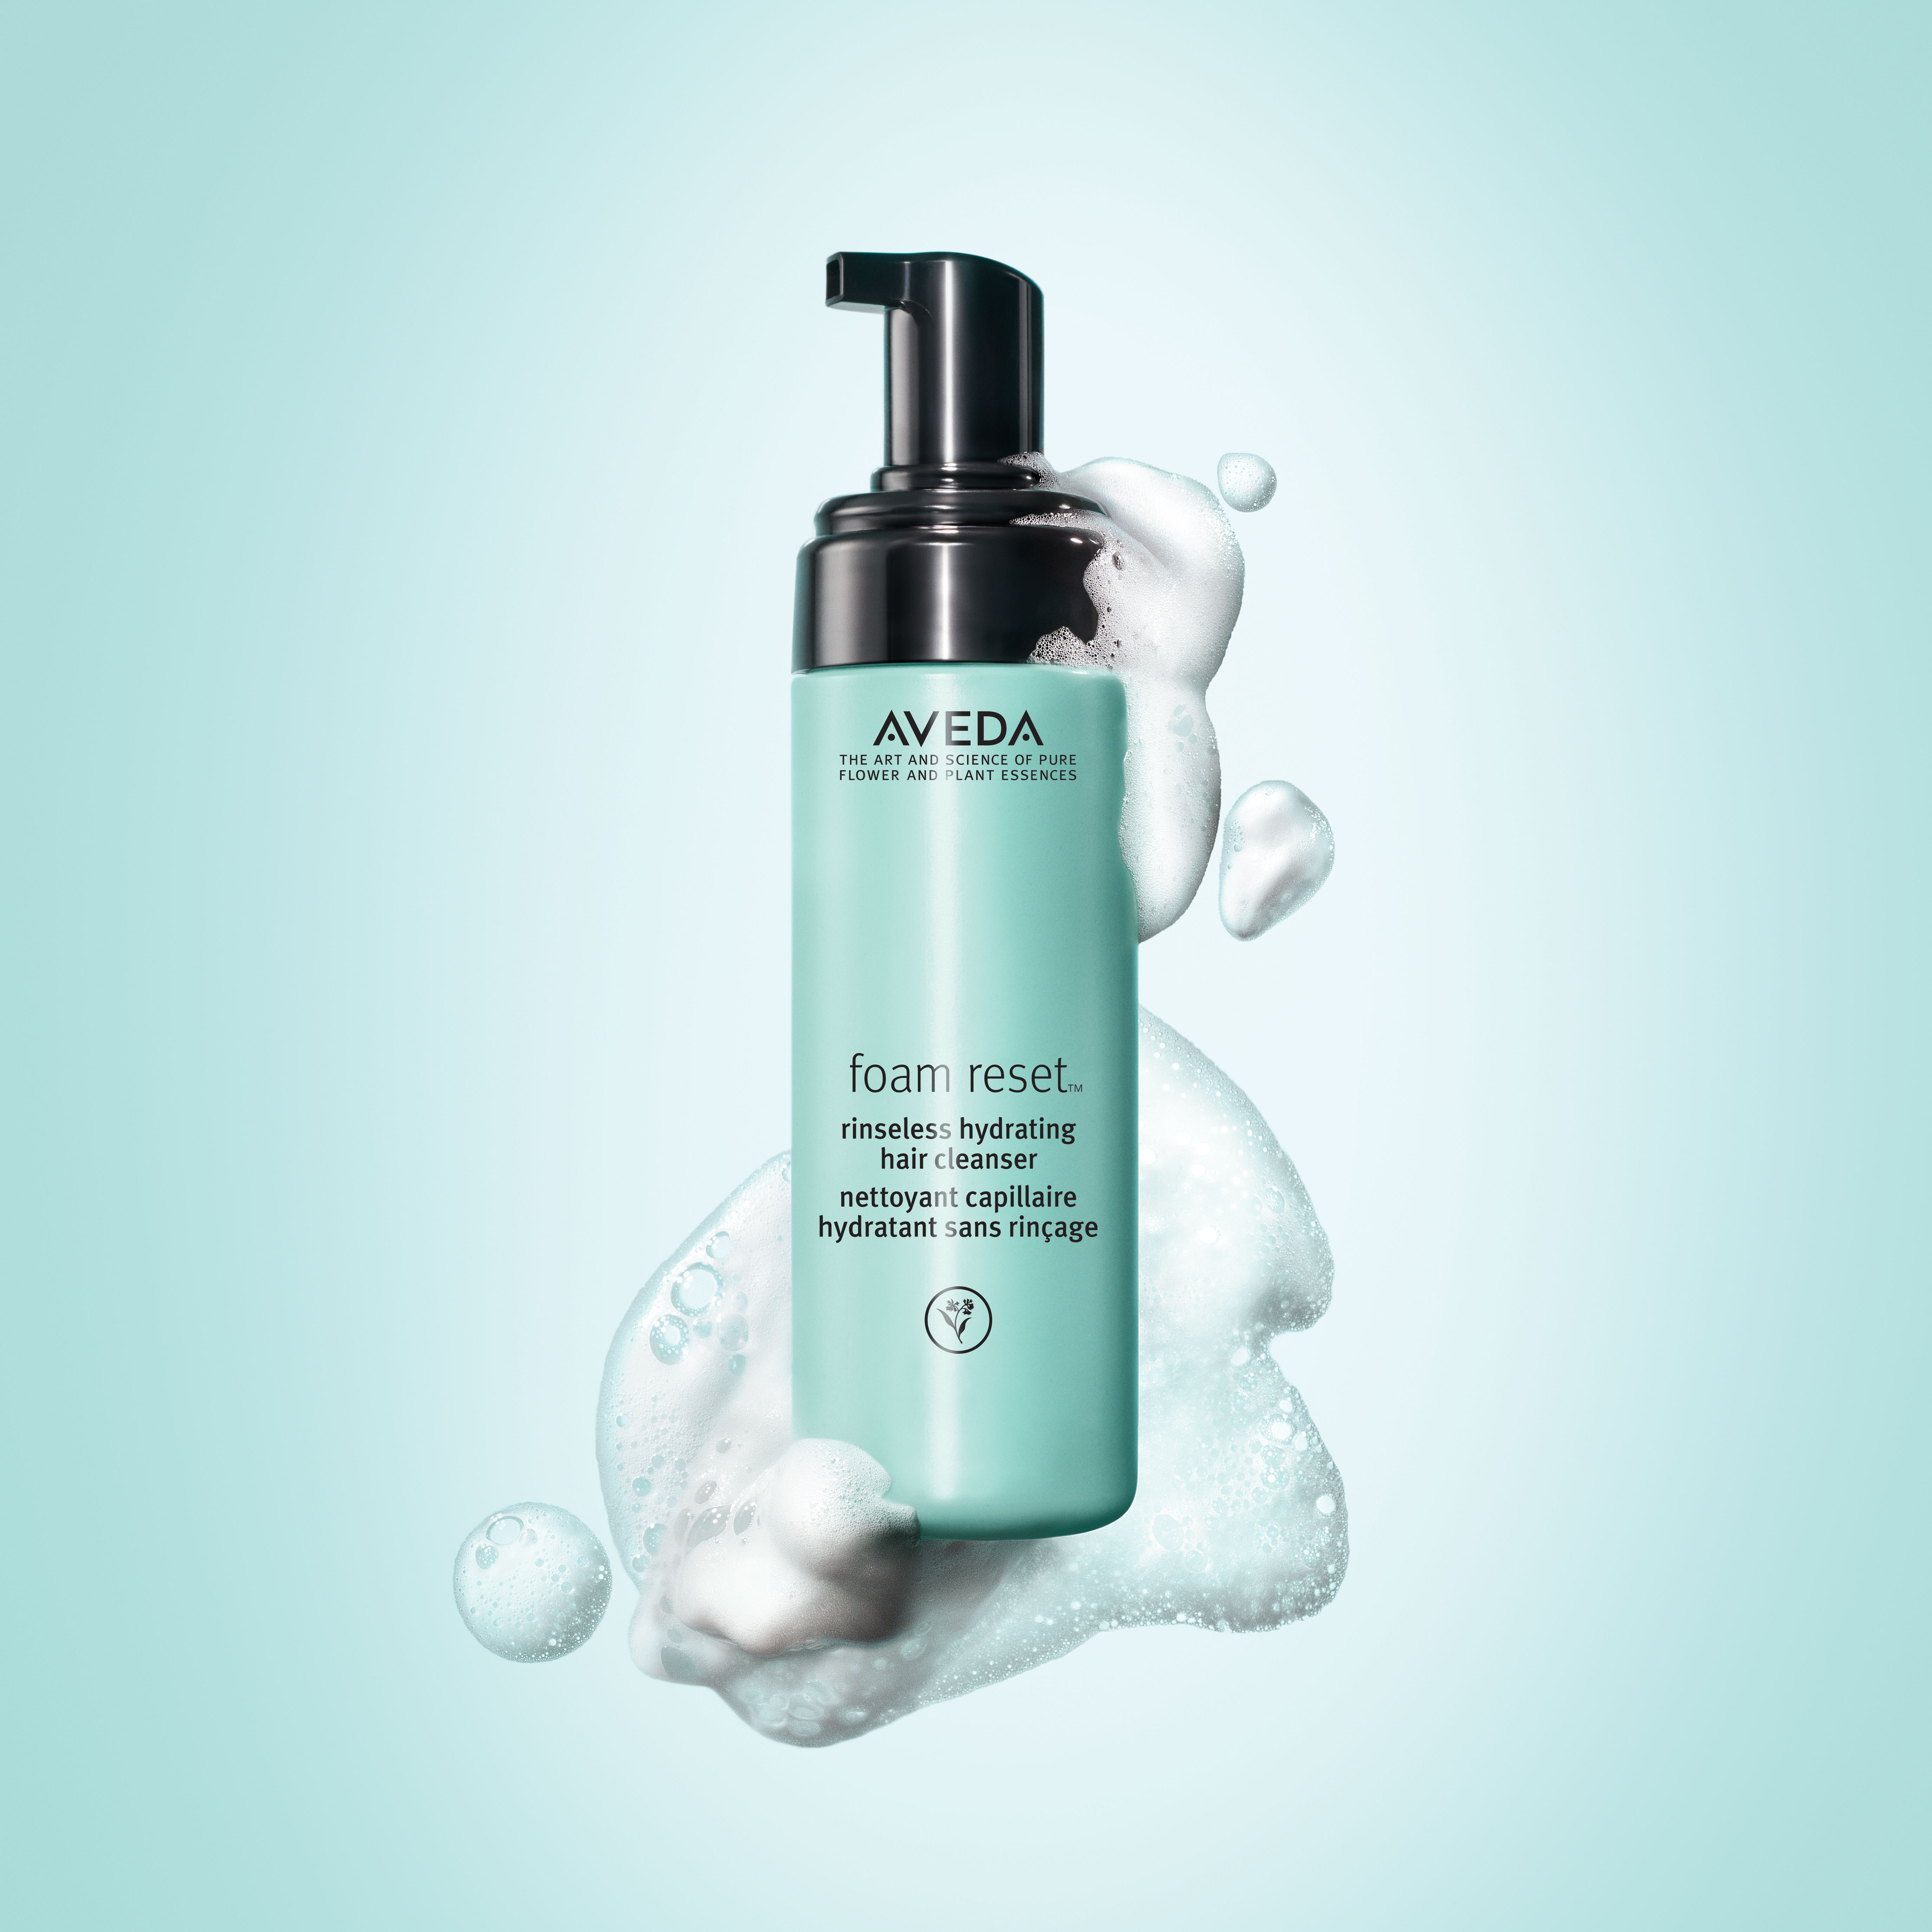 Free Earth Month Gift with Purchase from Aveda